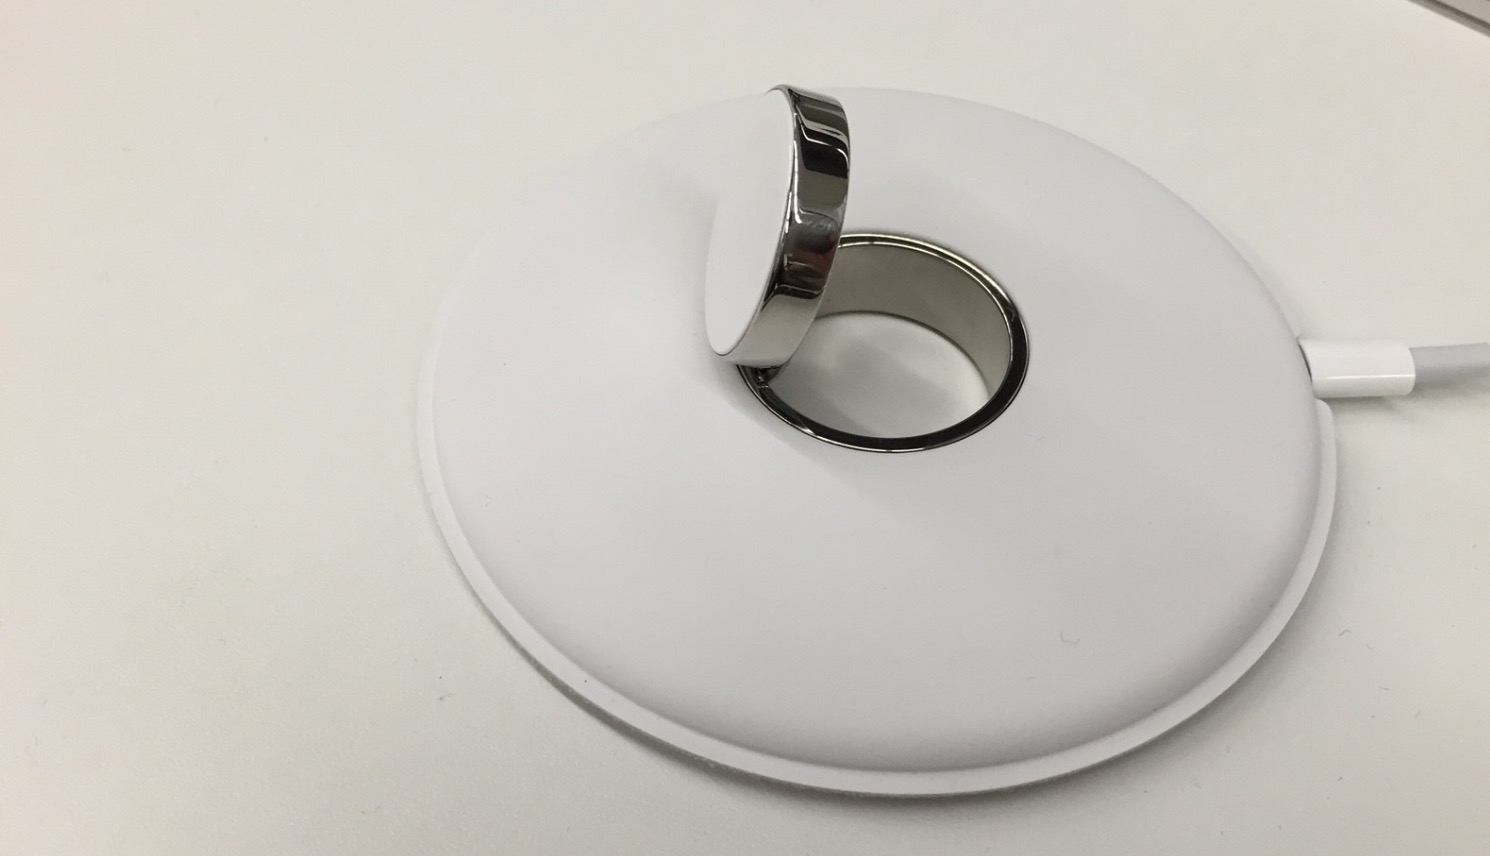 Apple Watch Magnetic Charging Dock image 003